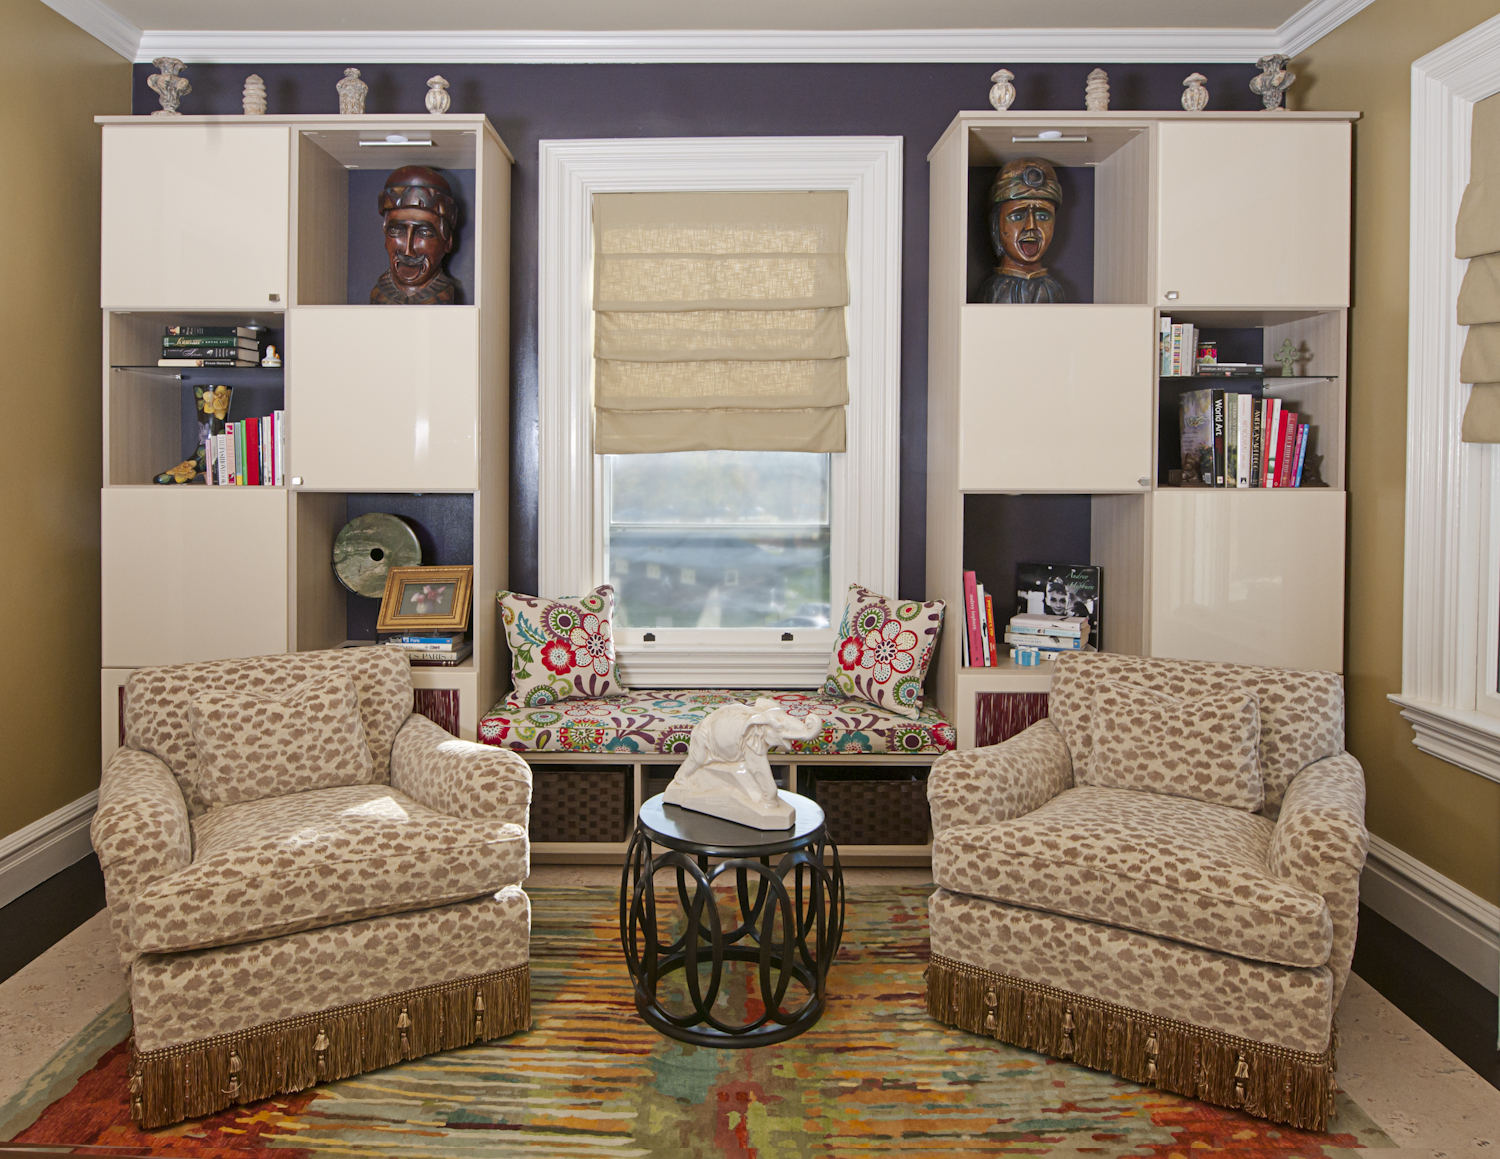 These High gloss cabinet doors are just half the story. To learn more call Closet Solutions today